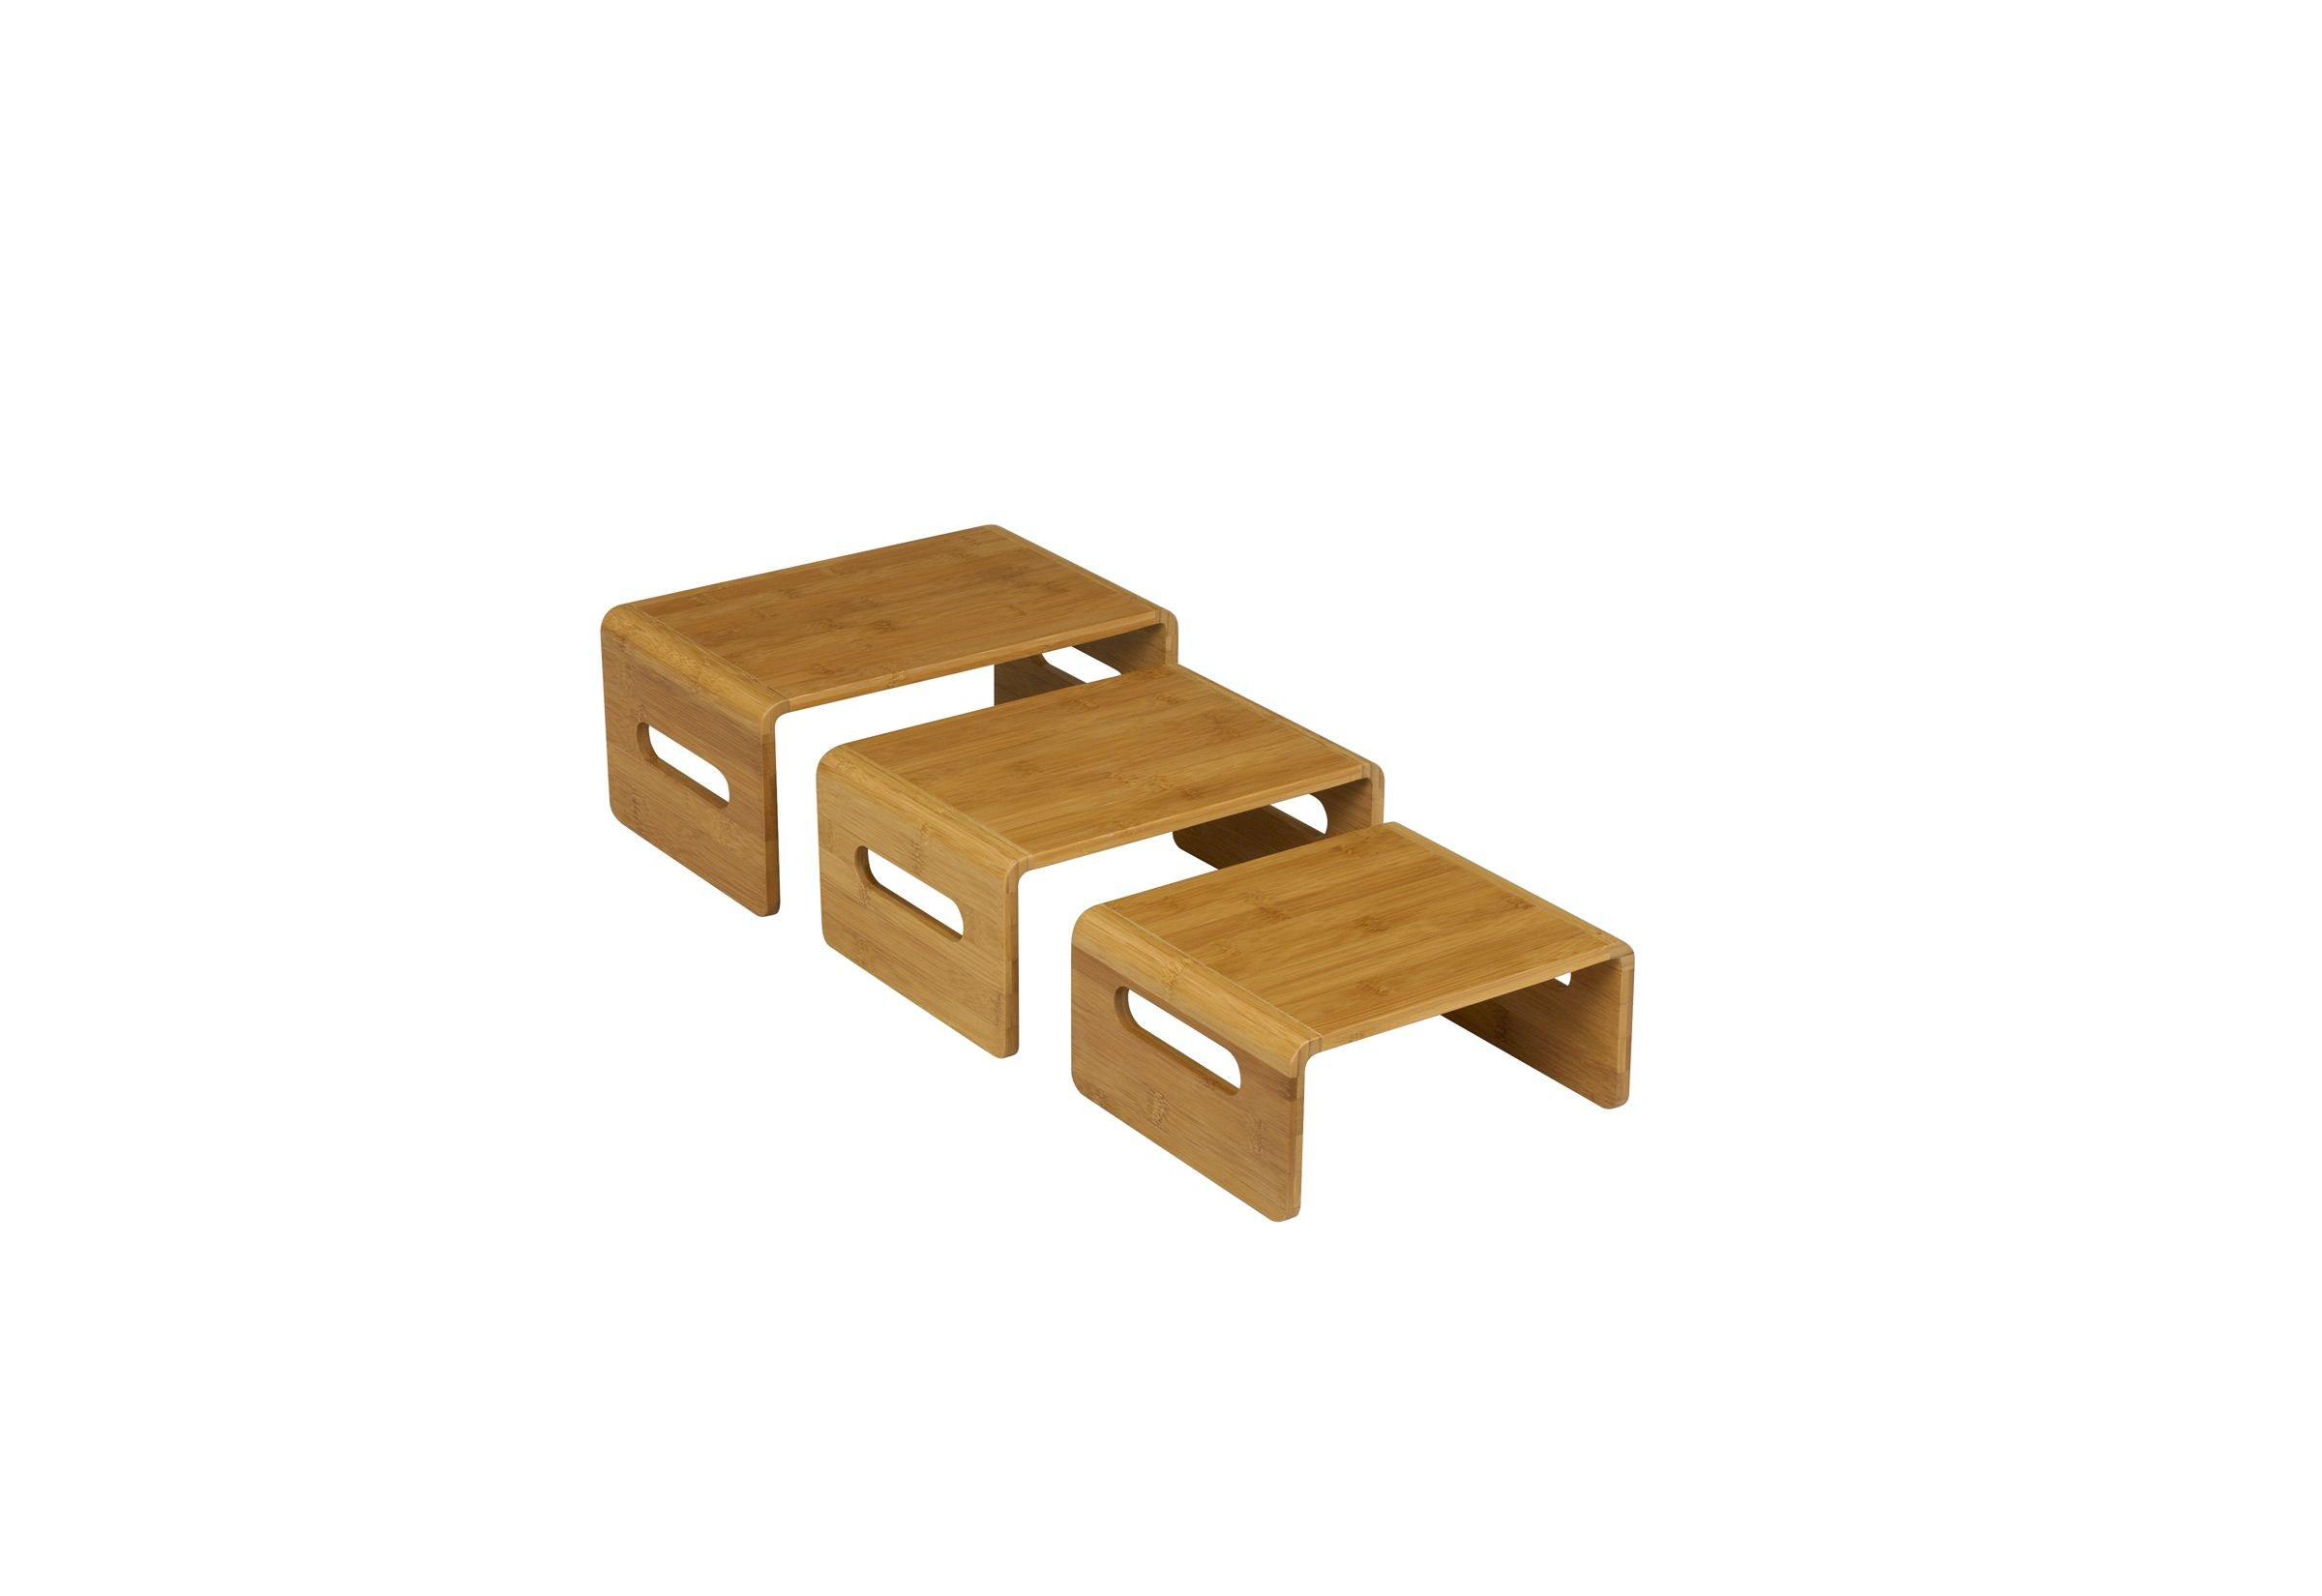 "Rosseto SB101 Natural Finish Bamboo Rectangular Risers Set of 3, 11"" x 8"" x 5.5""H"